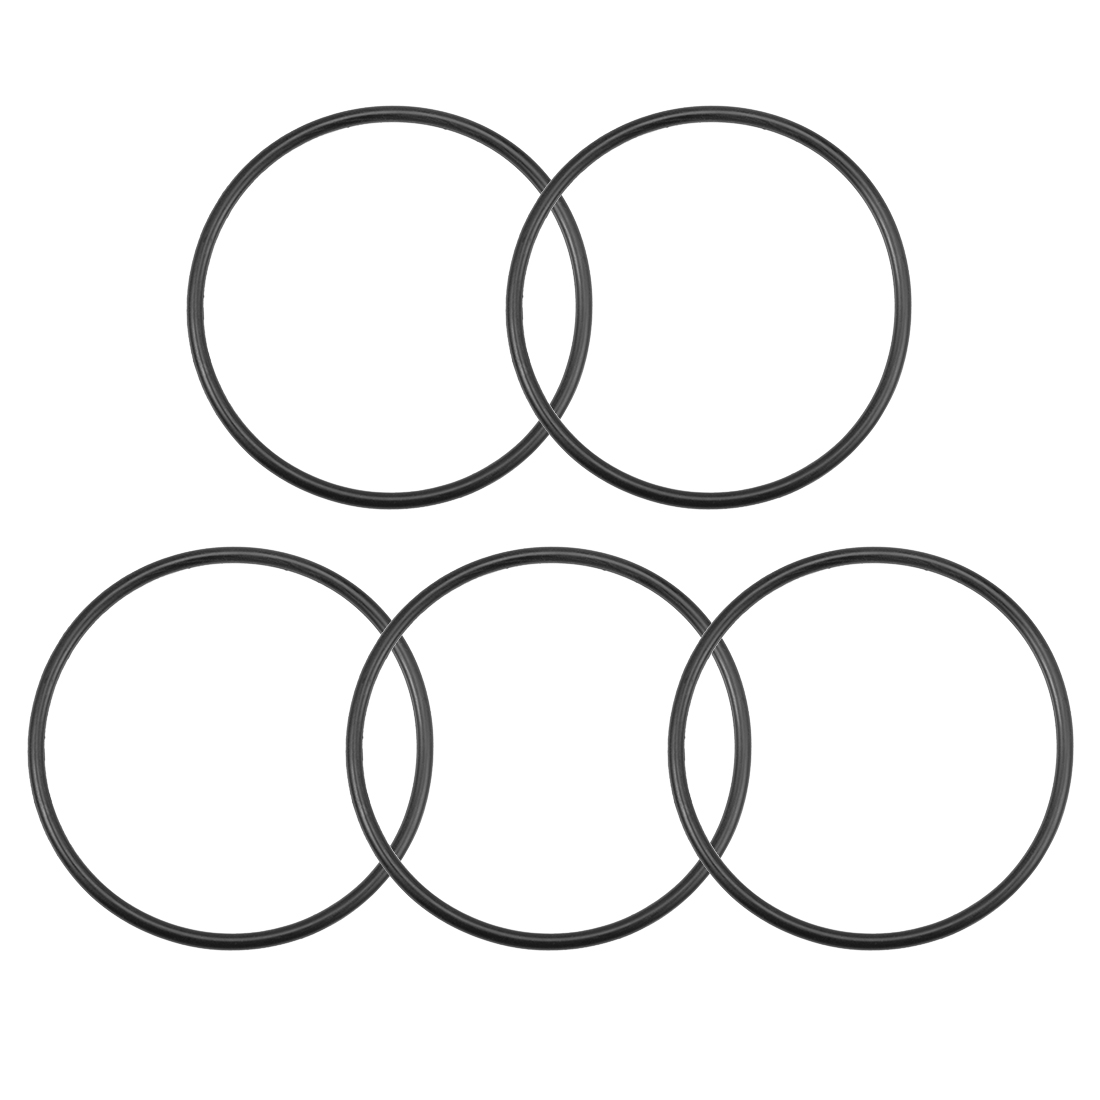 O-Rings Nitrile Rubber 113.6mm x 125mm x 5.7mm Round Seal Gasket 5 Pcs